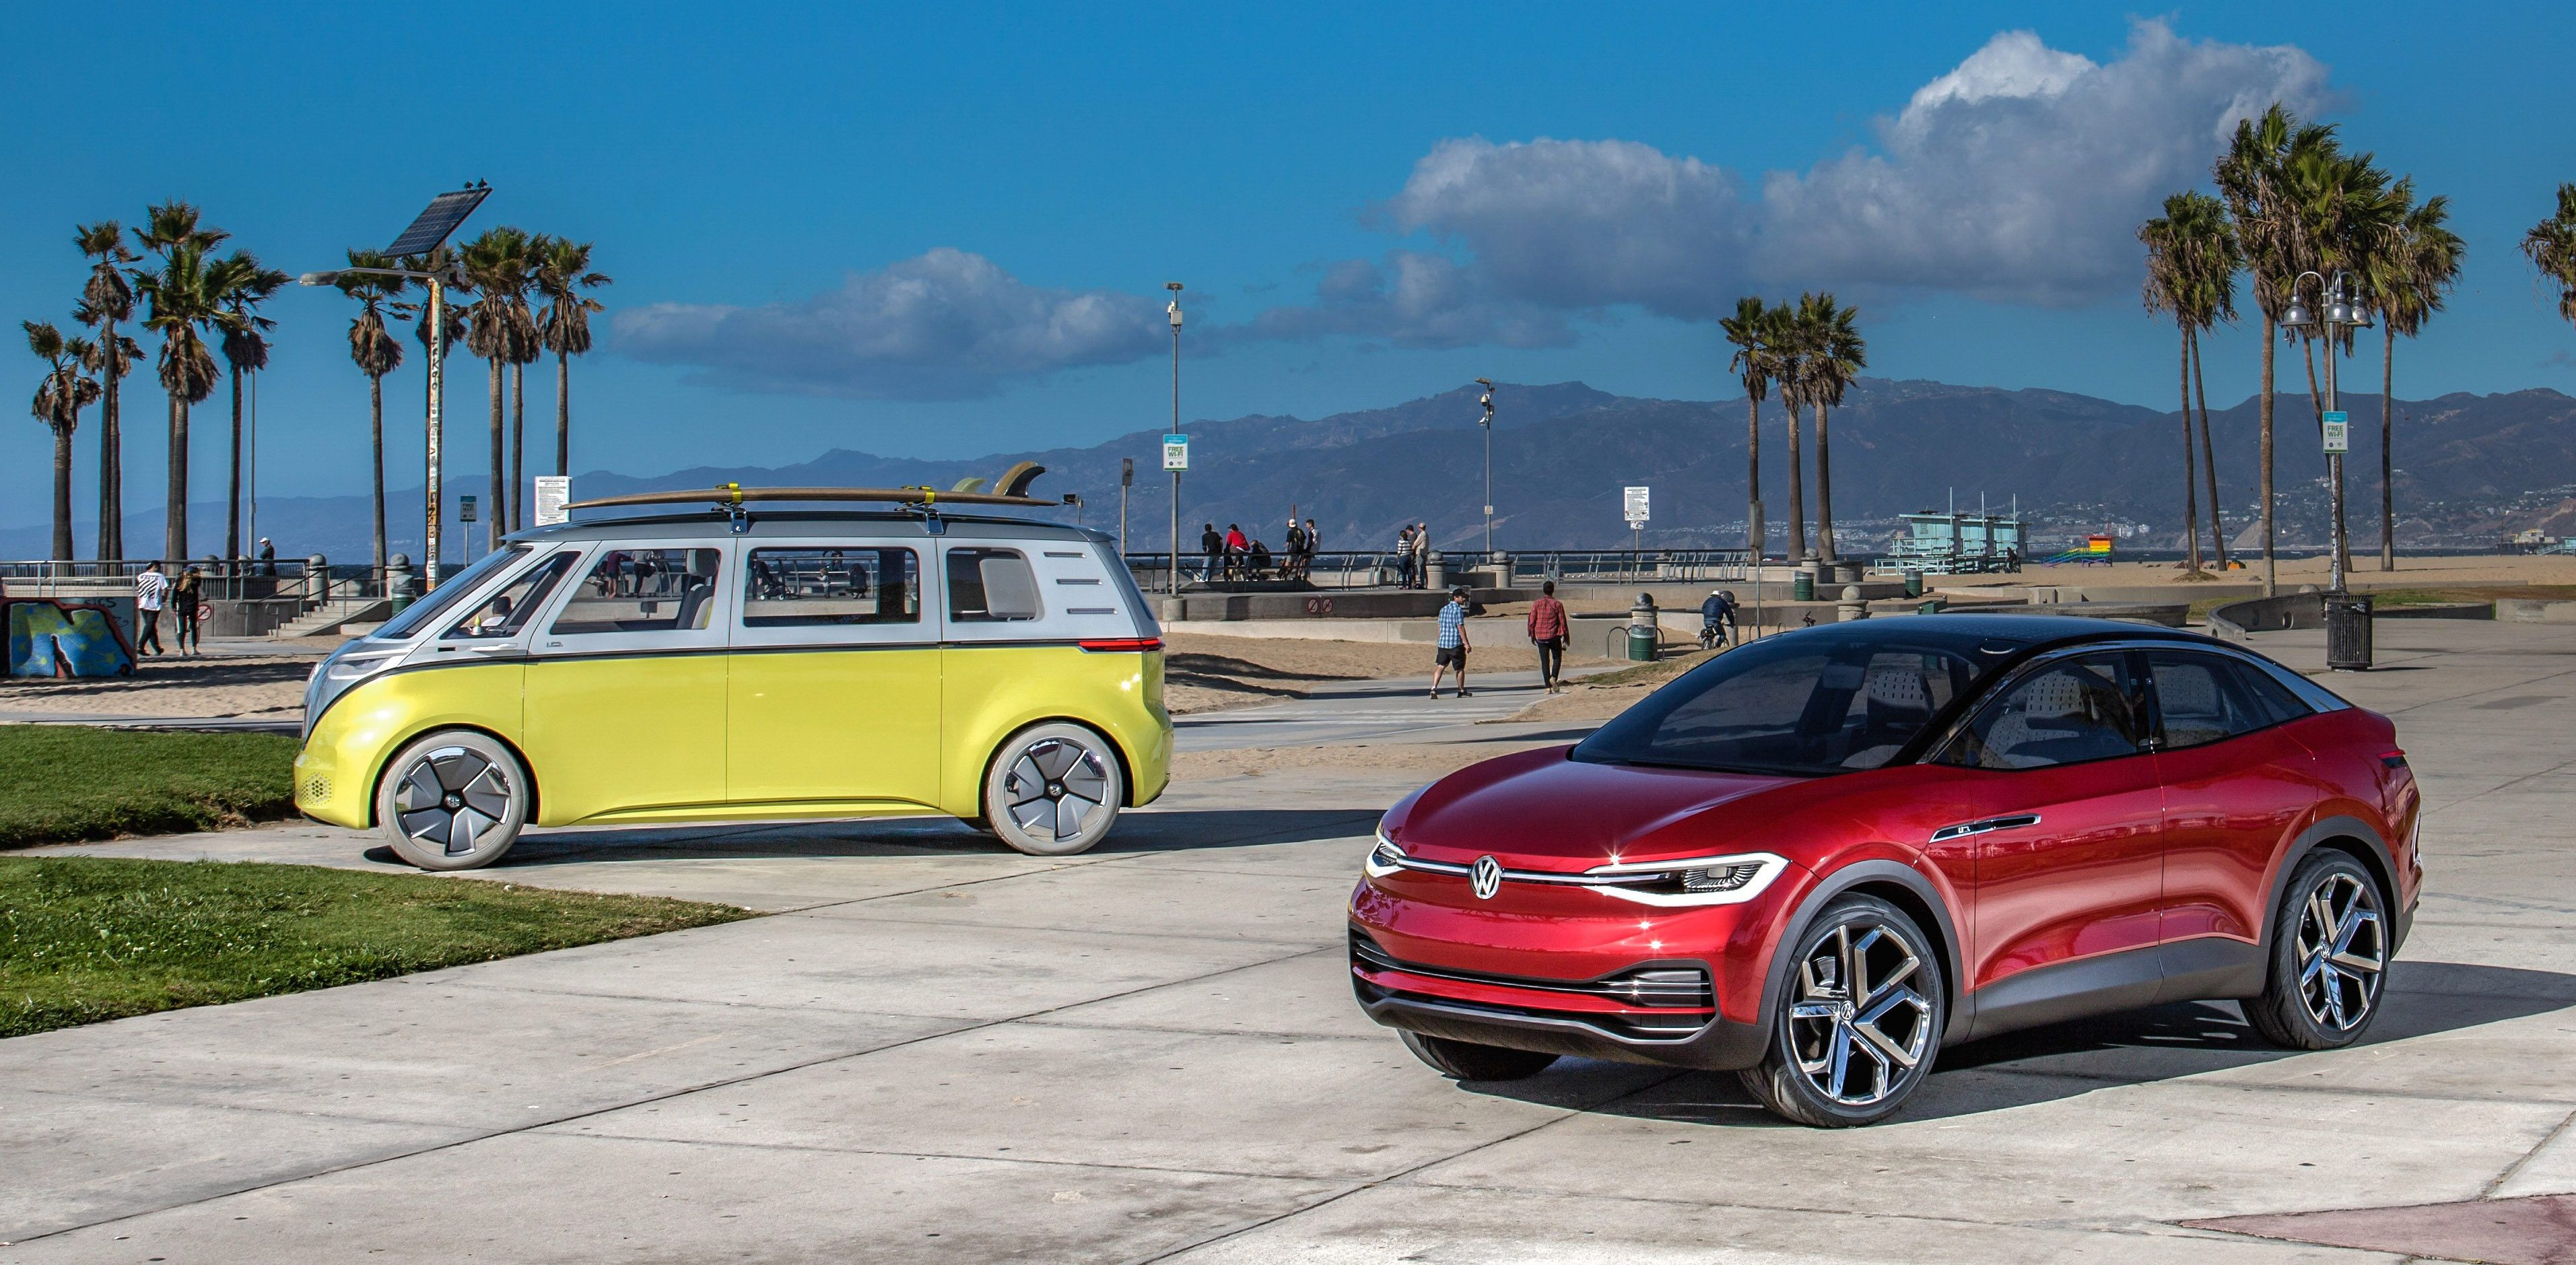 VW plans to produce its all-electric microbus and crossover in the US